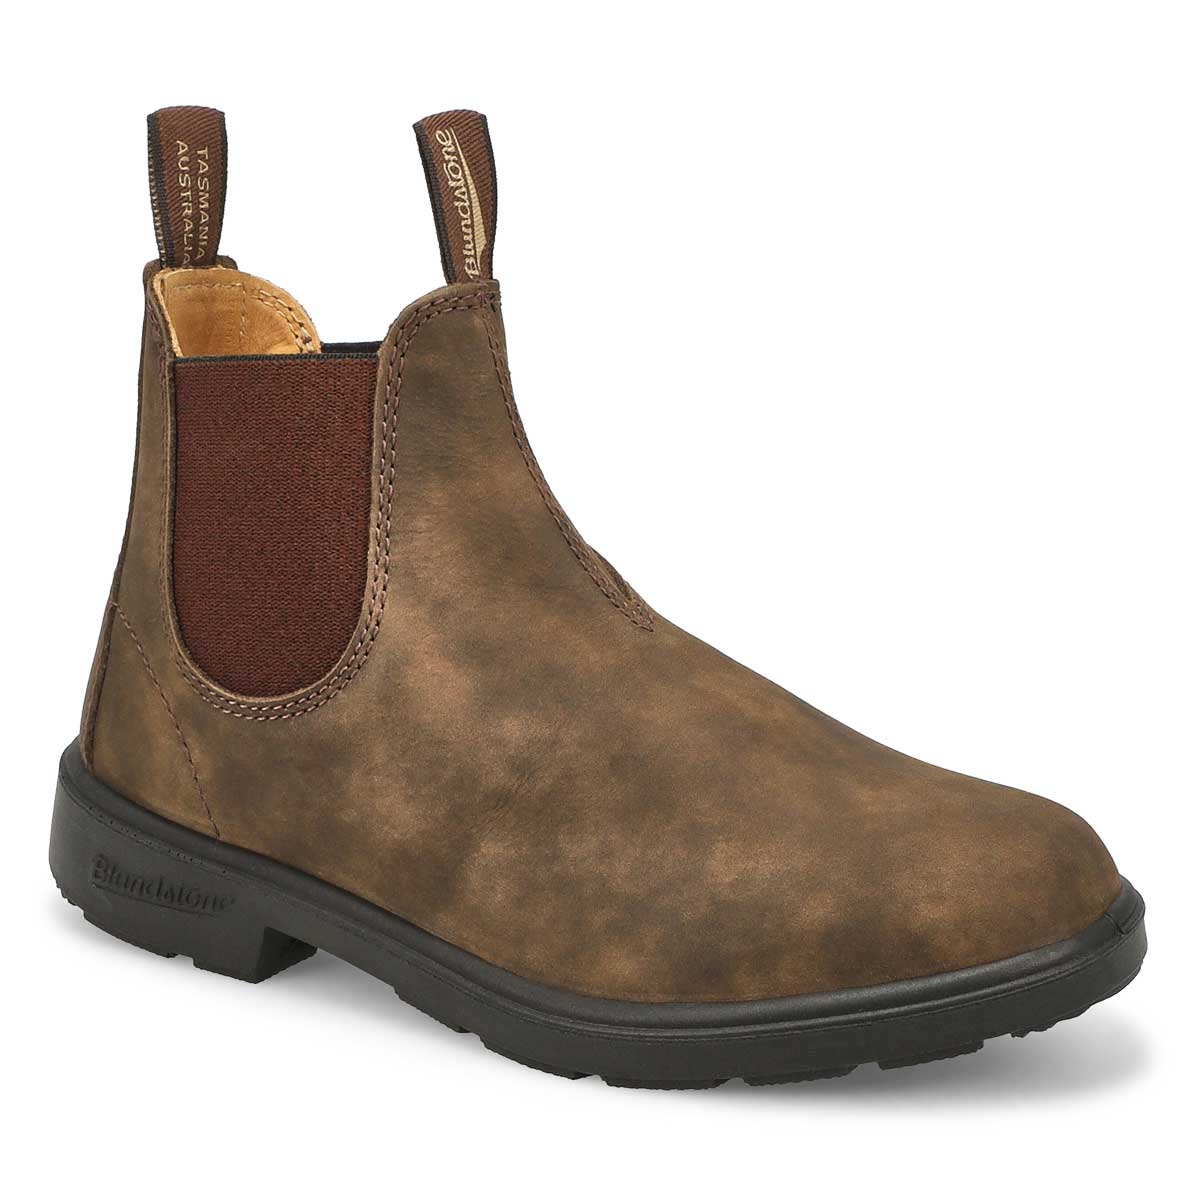 Kids' BLUNNIES brown pull-on boots - UK SIZING